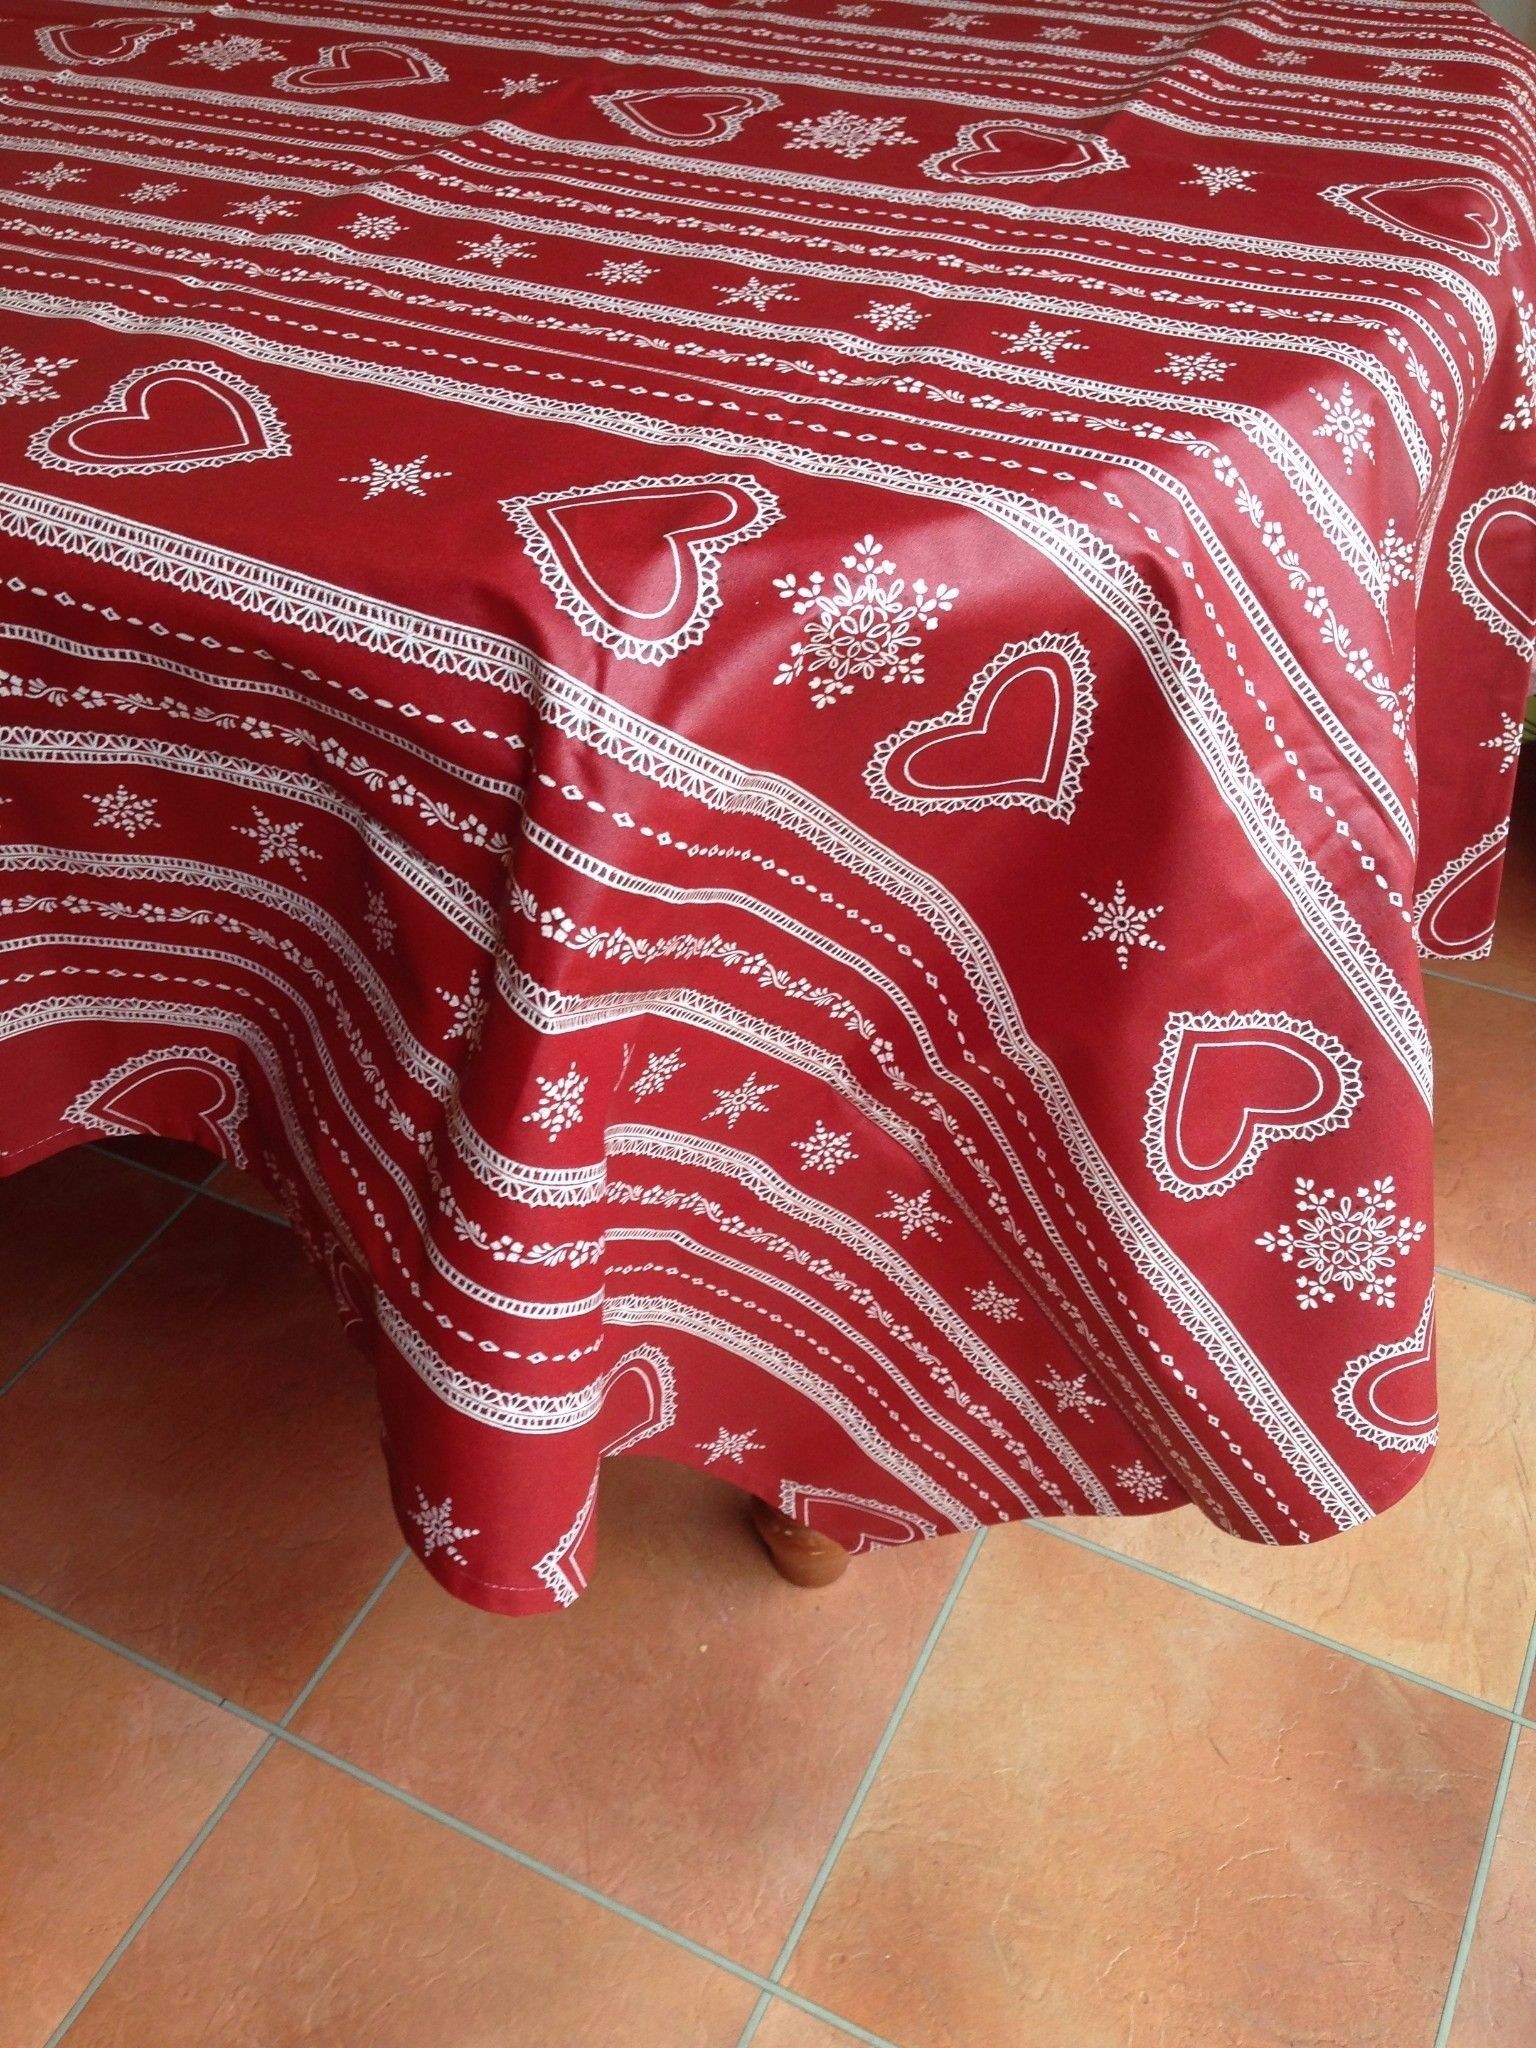 Wipe Clean Coated Tablecloths